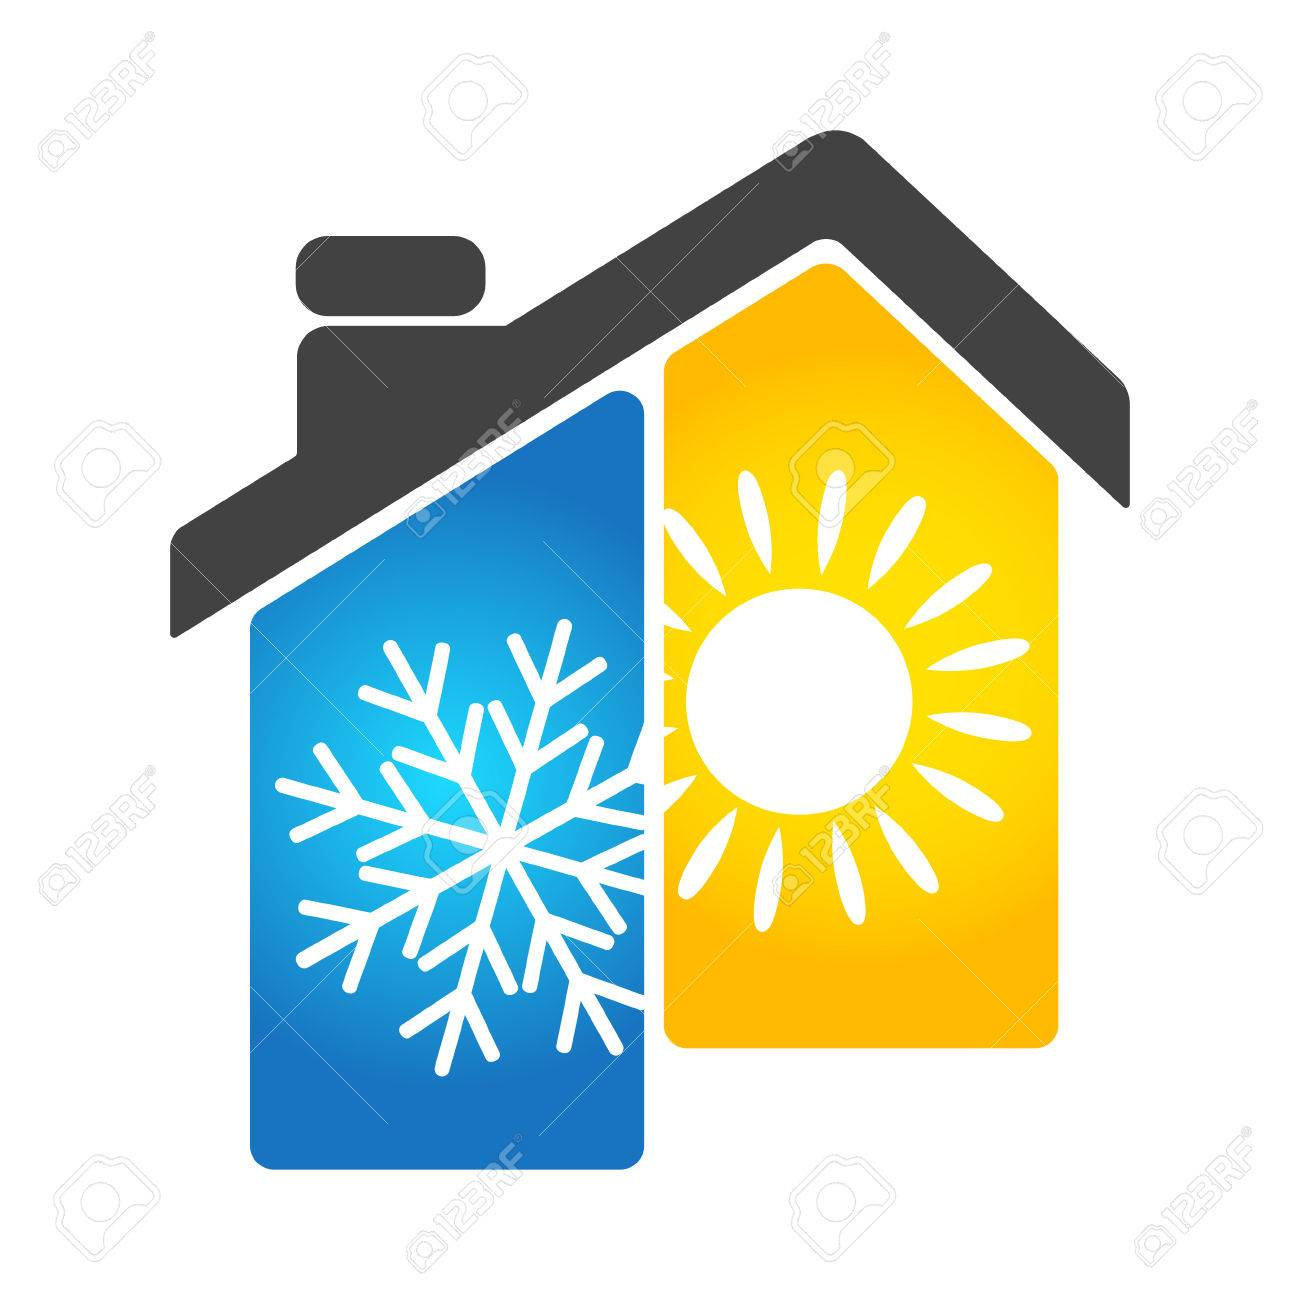 air conditioning and heating the house symbol business royalty free